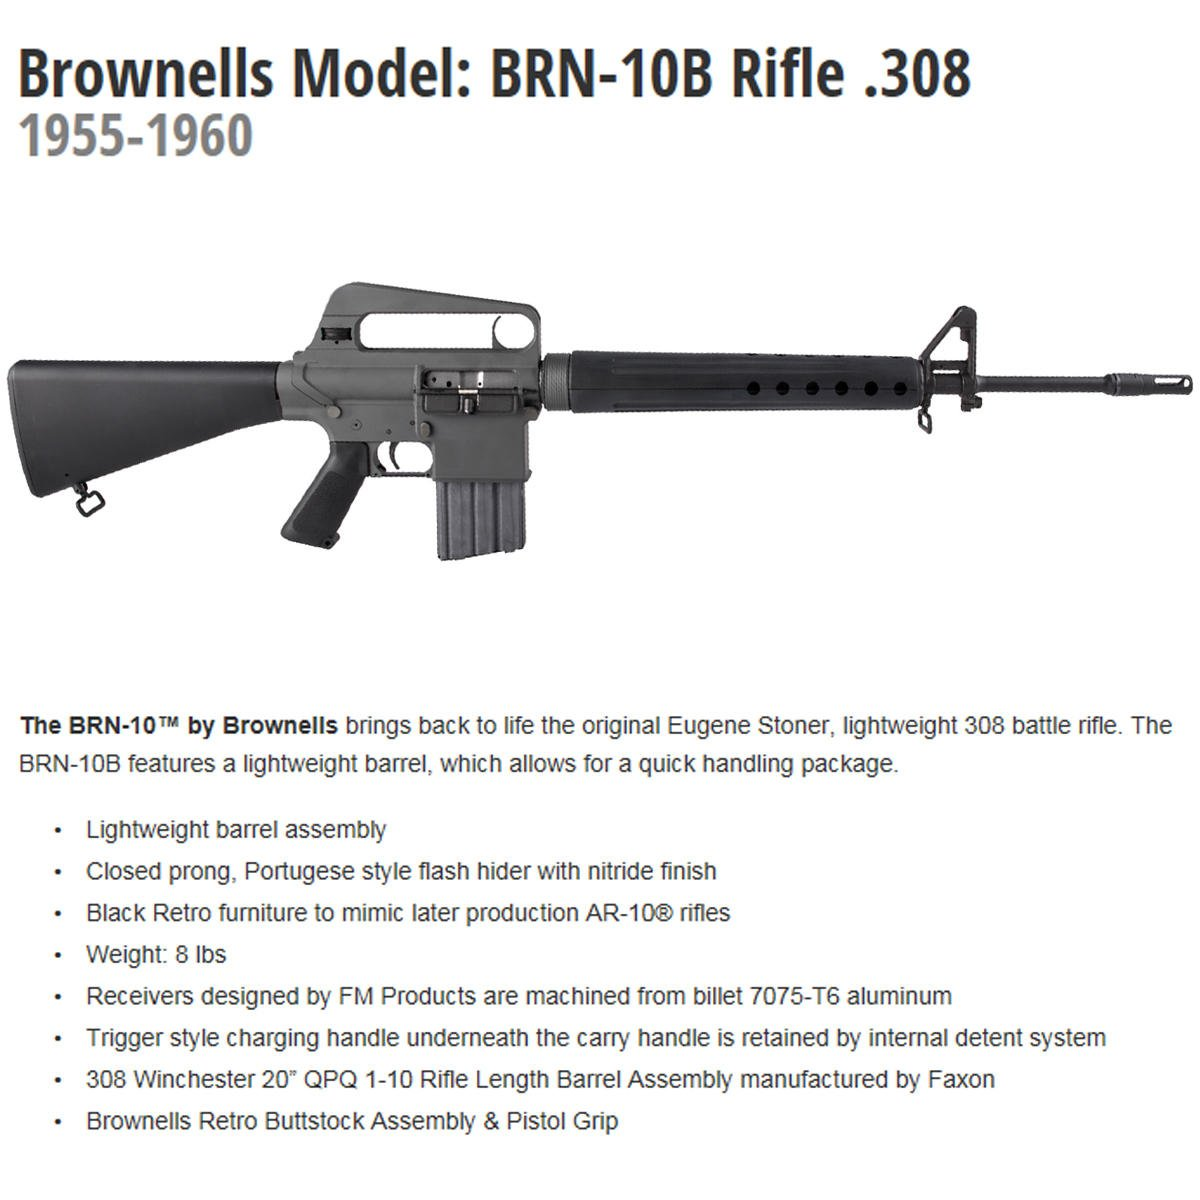 Brownells inc on twitter introducing the brownells model brn brownells inc on twitter introducing the brownells model brn 10b rifle 308 1955 1960 brownells brings back to life the original eugene stoner thecheapjerseys Choice Image